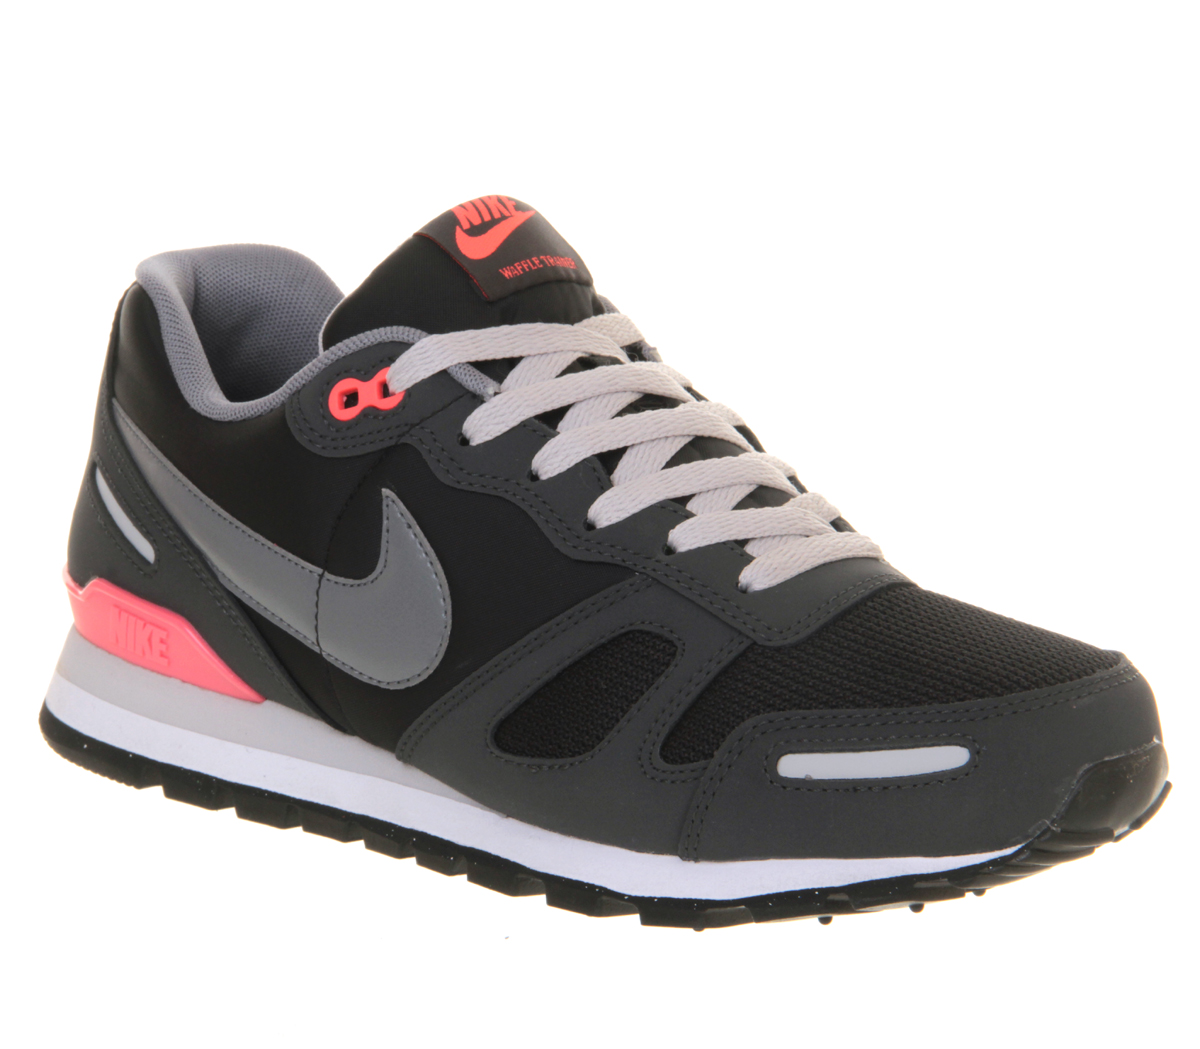 b5c2efff39c ... shopping lyst nike air waffle trainer in gray for men fee41 5aa64